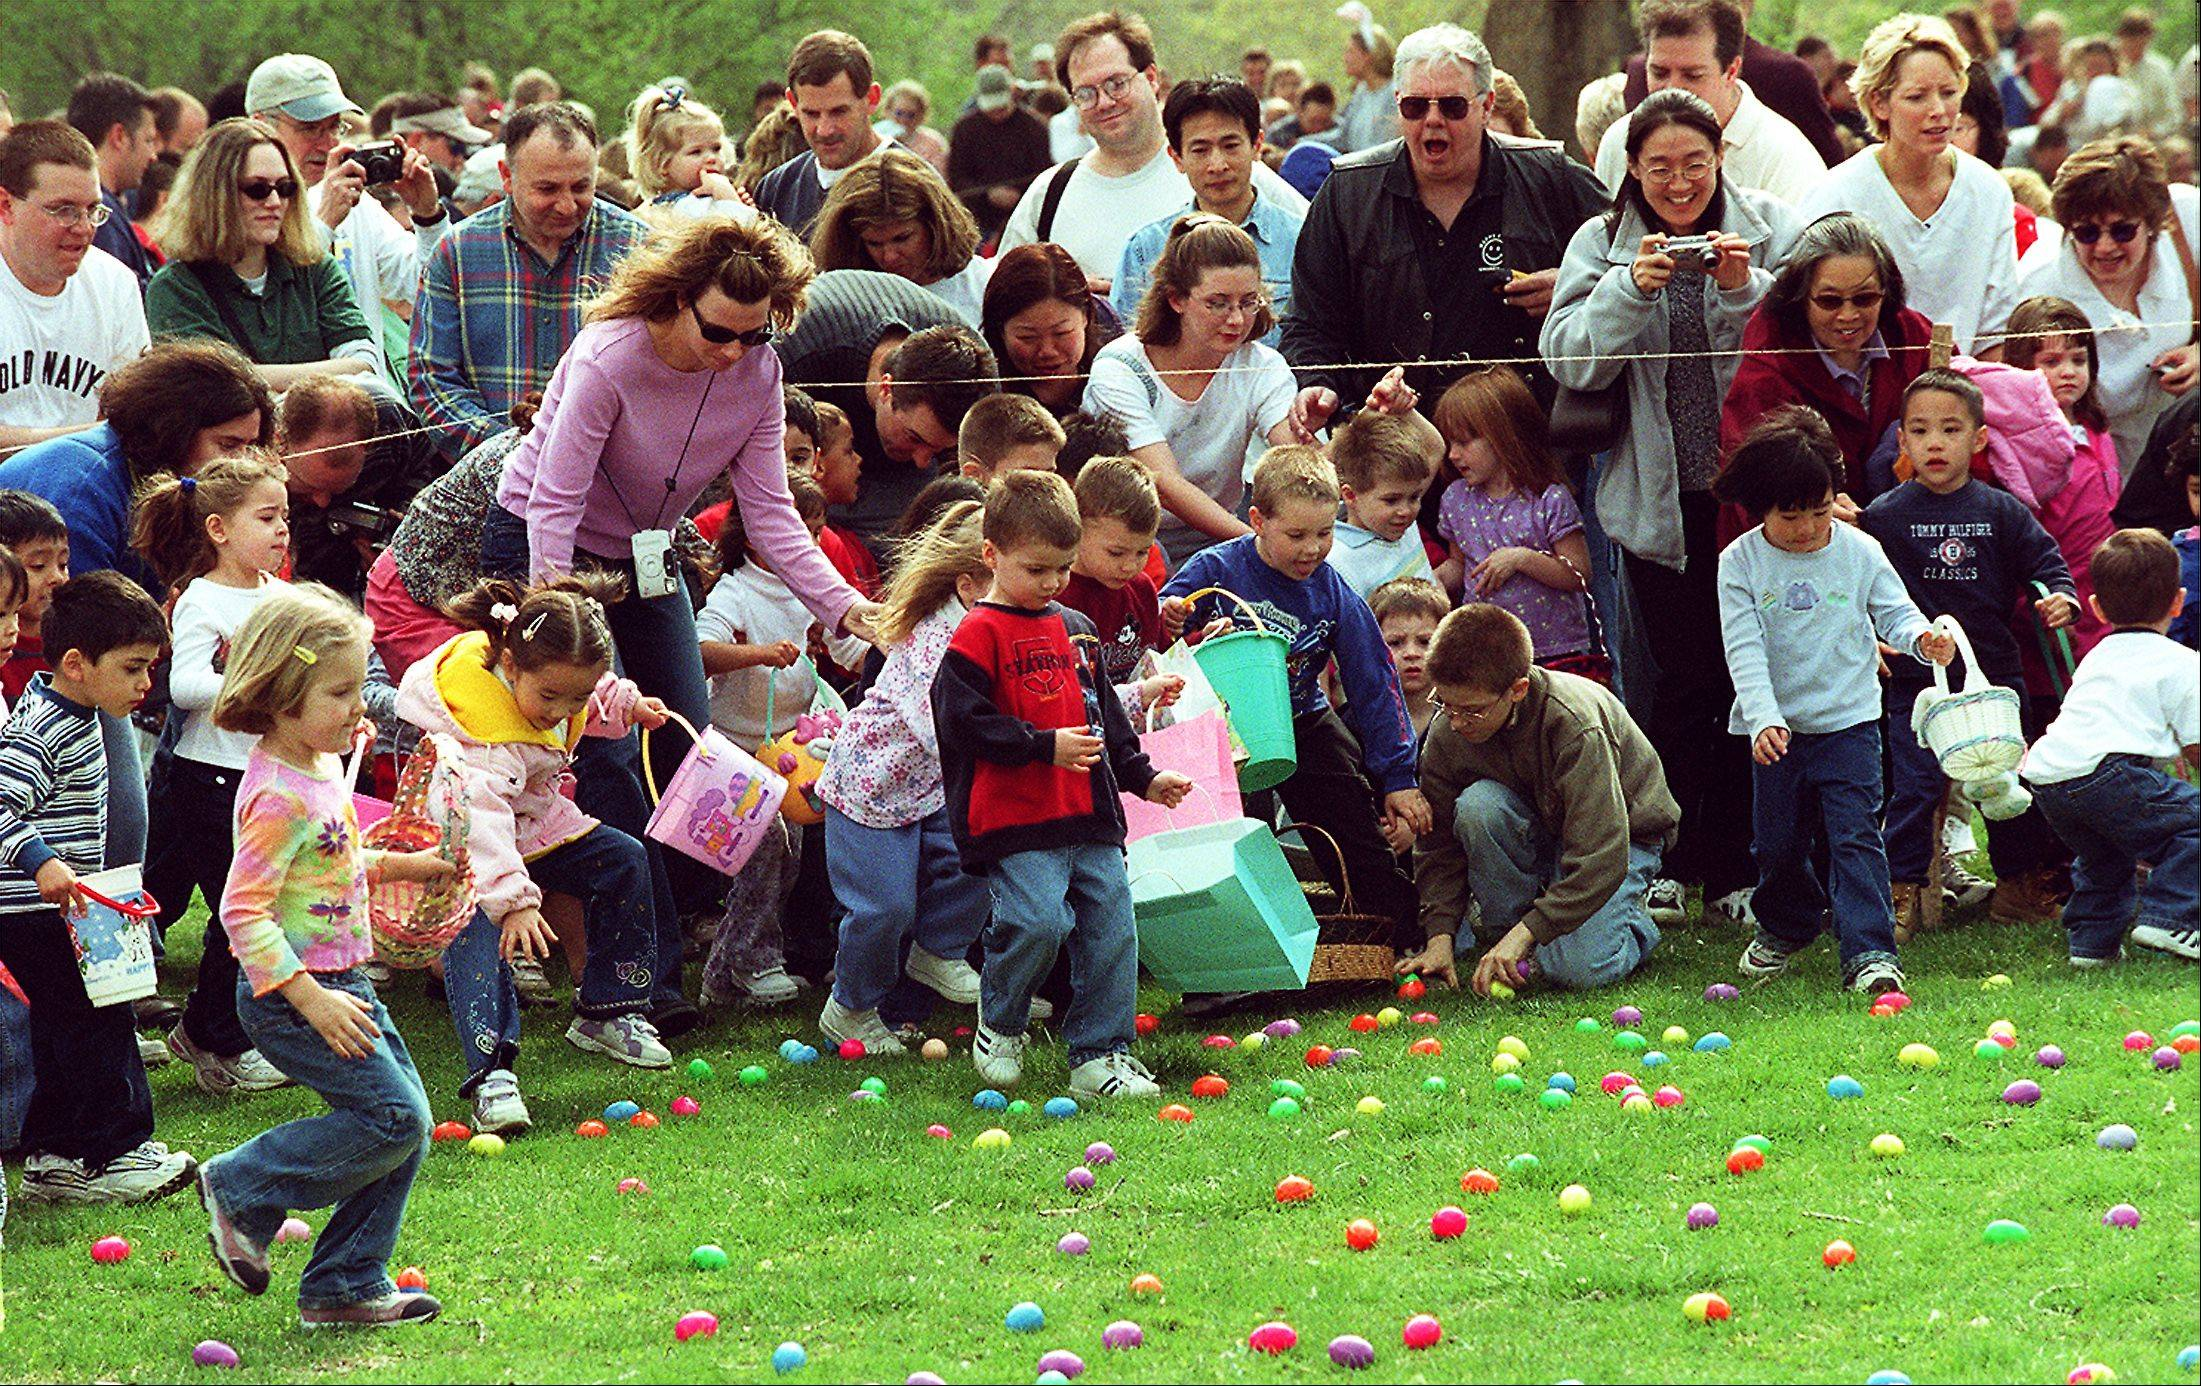 Don't look now, but the Easter egg hunting season already is upon us.